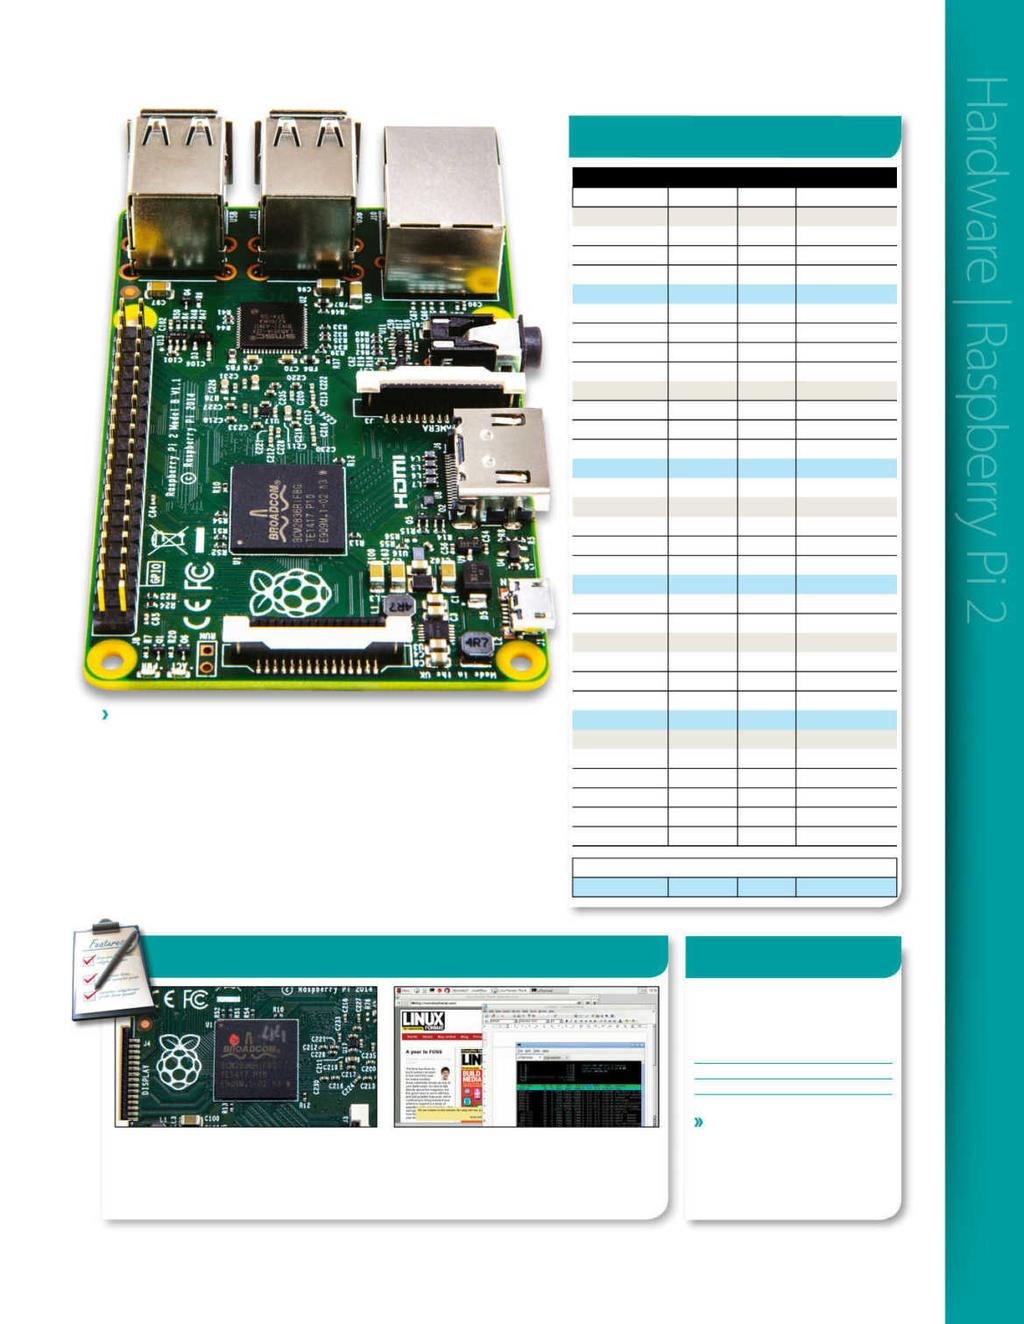 New The Only Guide You Need To Get More From Amazing Mini Pc Wolfson Pi Audio Card Circuit Board For Raspberry Cancel Reply Sunspider Benchmarks Test 2 B Times Faster Form Factor May Be Same As